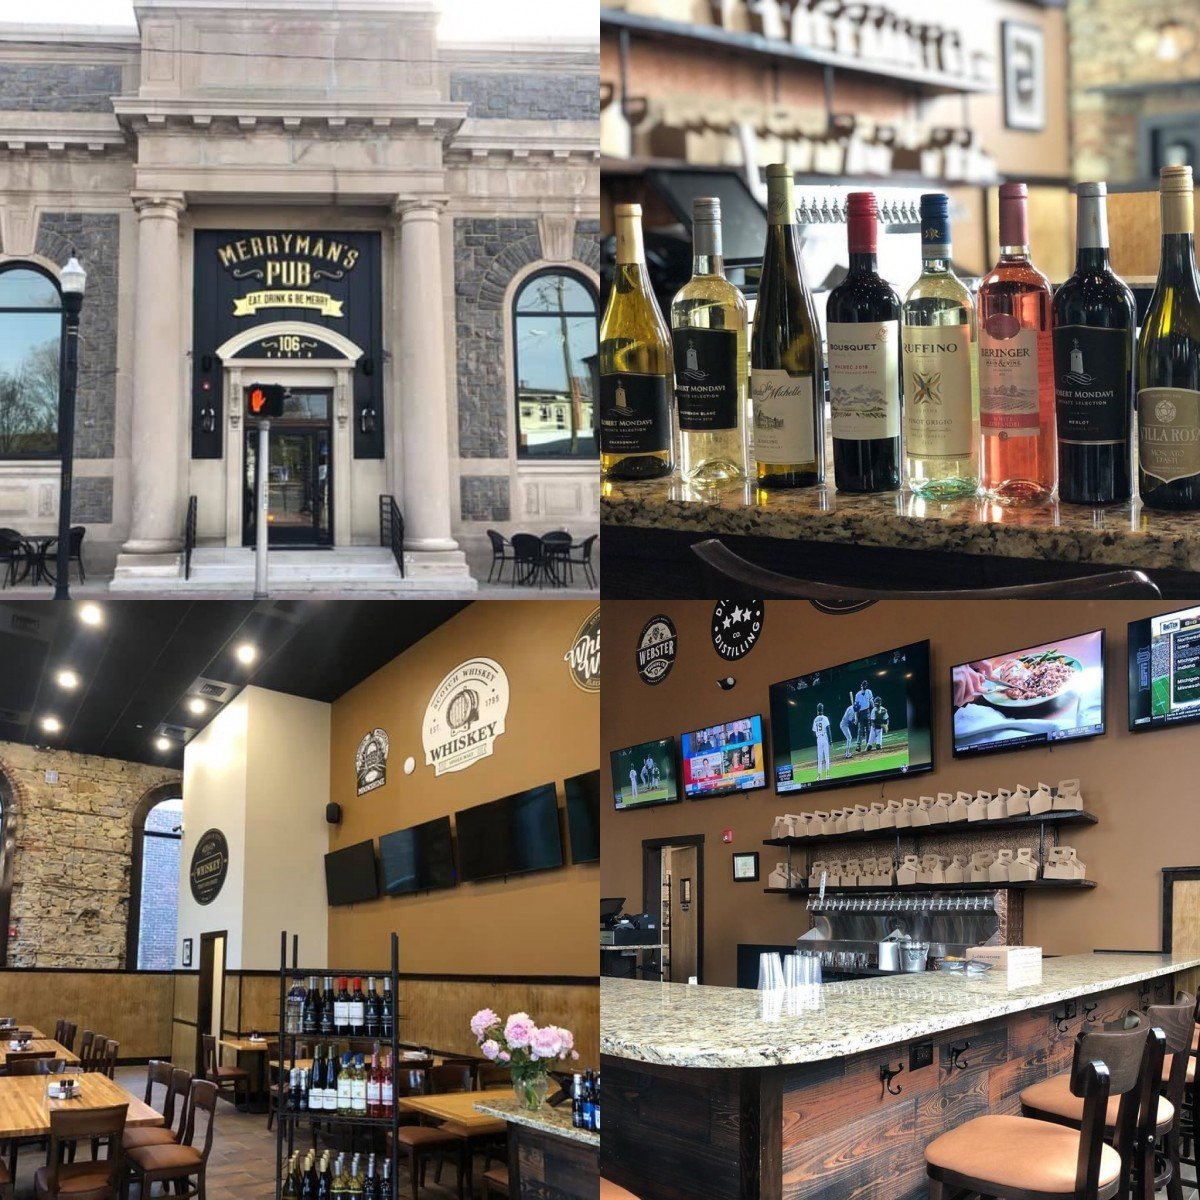 Pitman's First Full Bar Has Opened!   Merryman's Pub Offering Takeout of Cocktails, Packaged Goods and Select Food Items